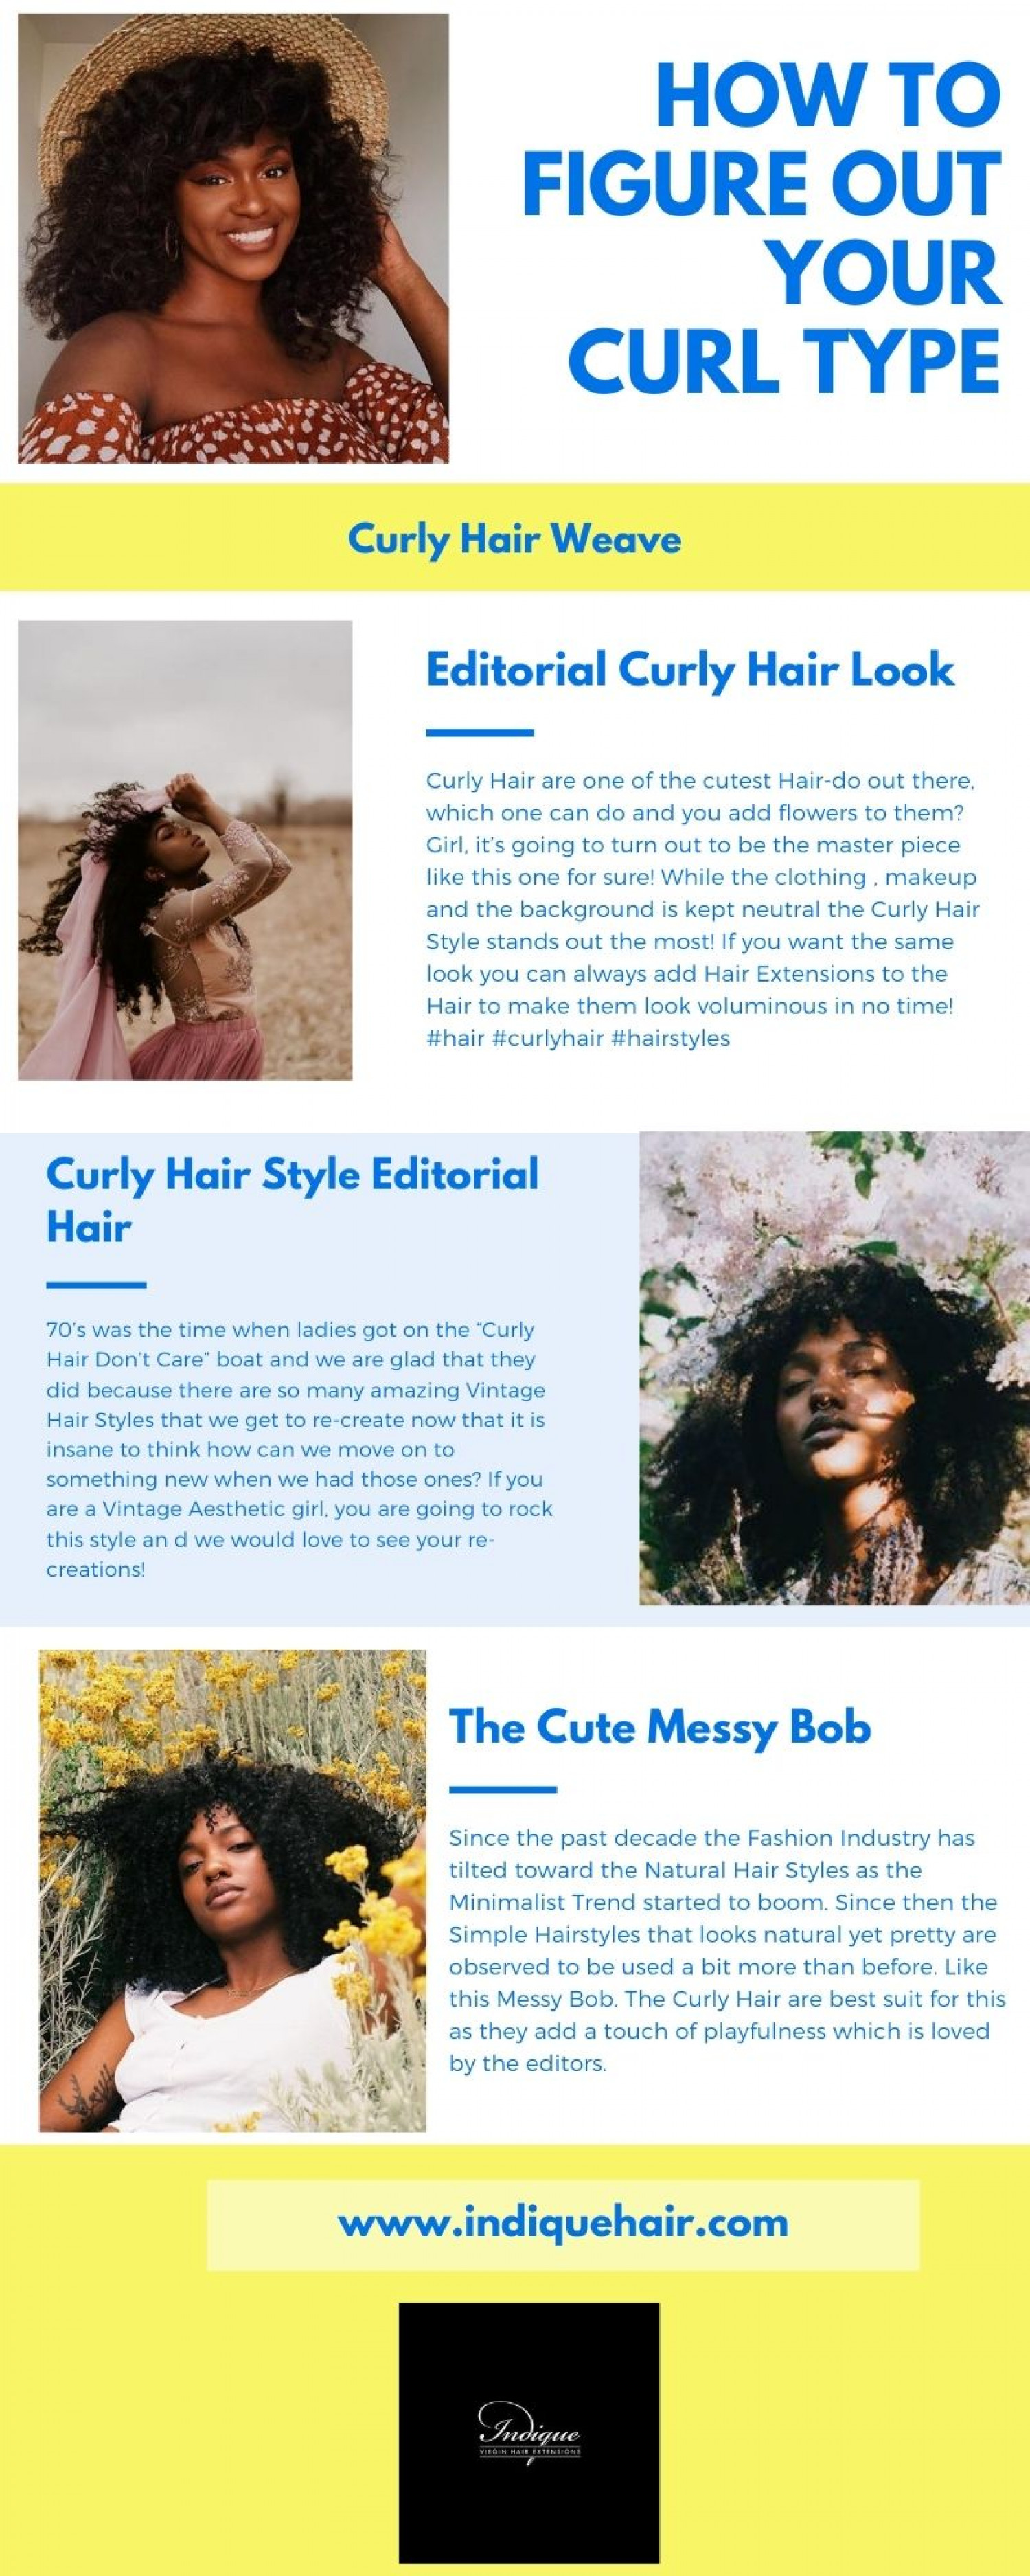 How to Figure Out Your Curl Type Infographic